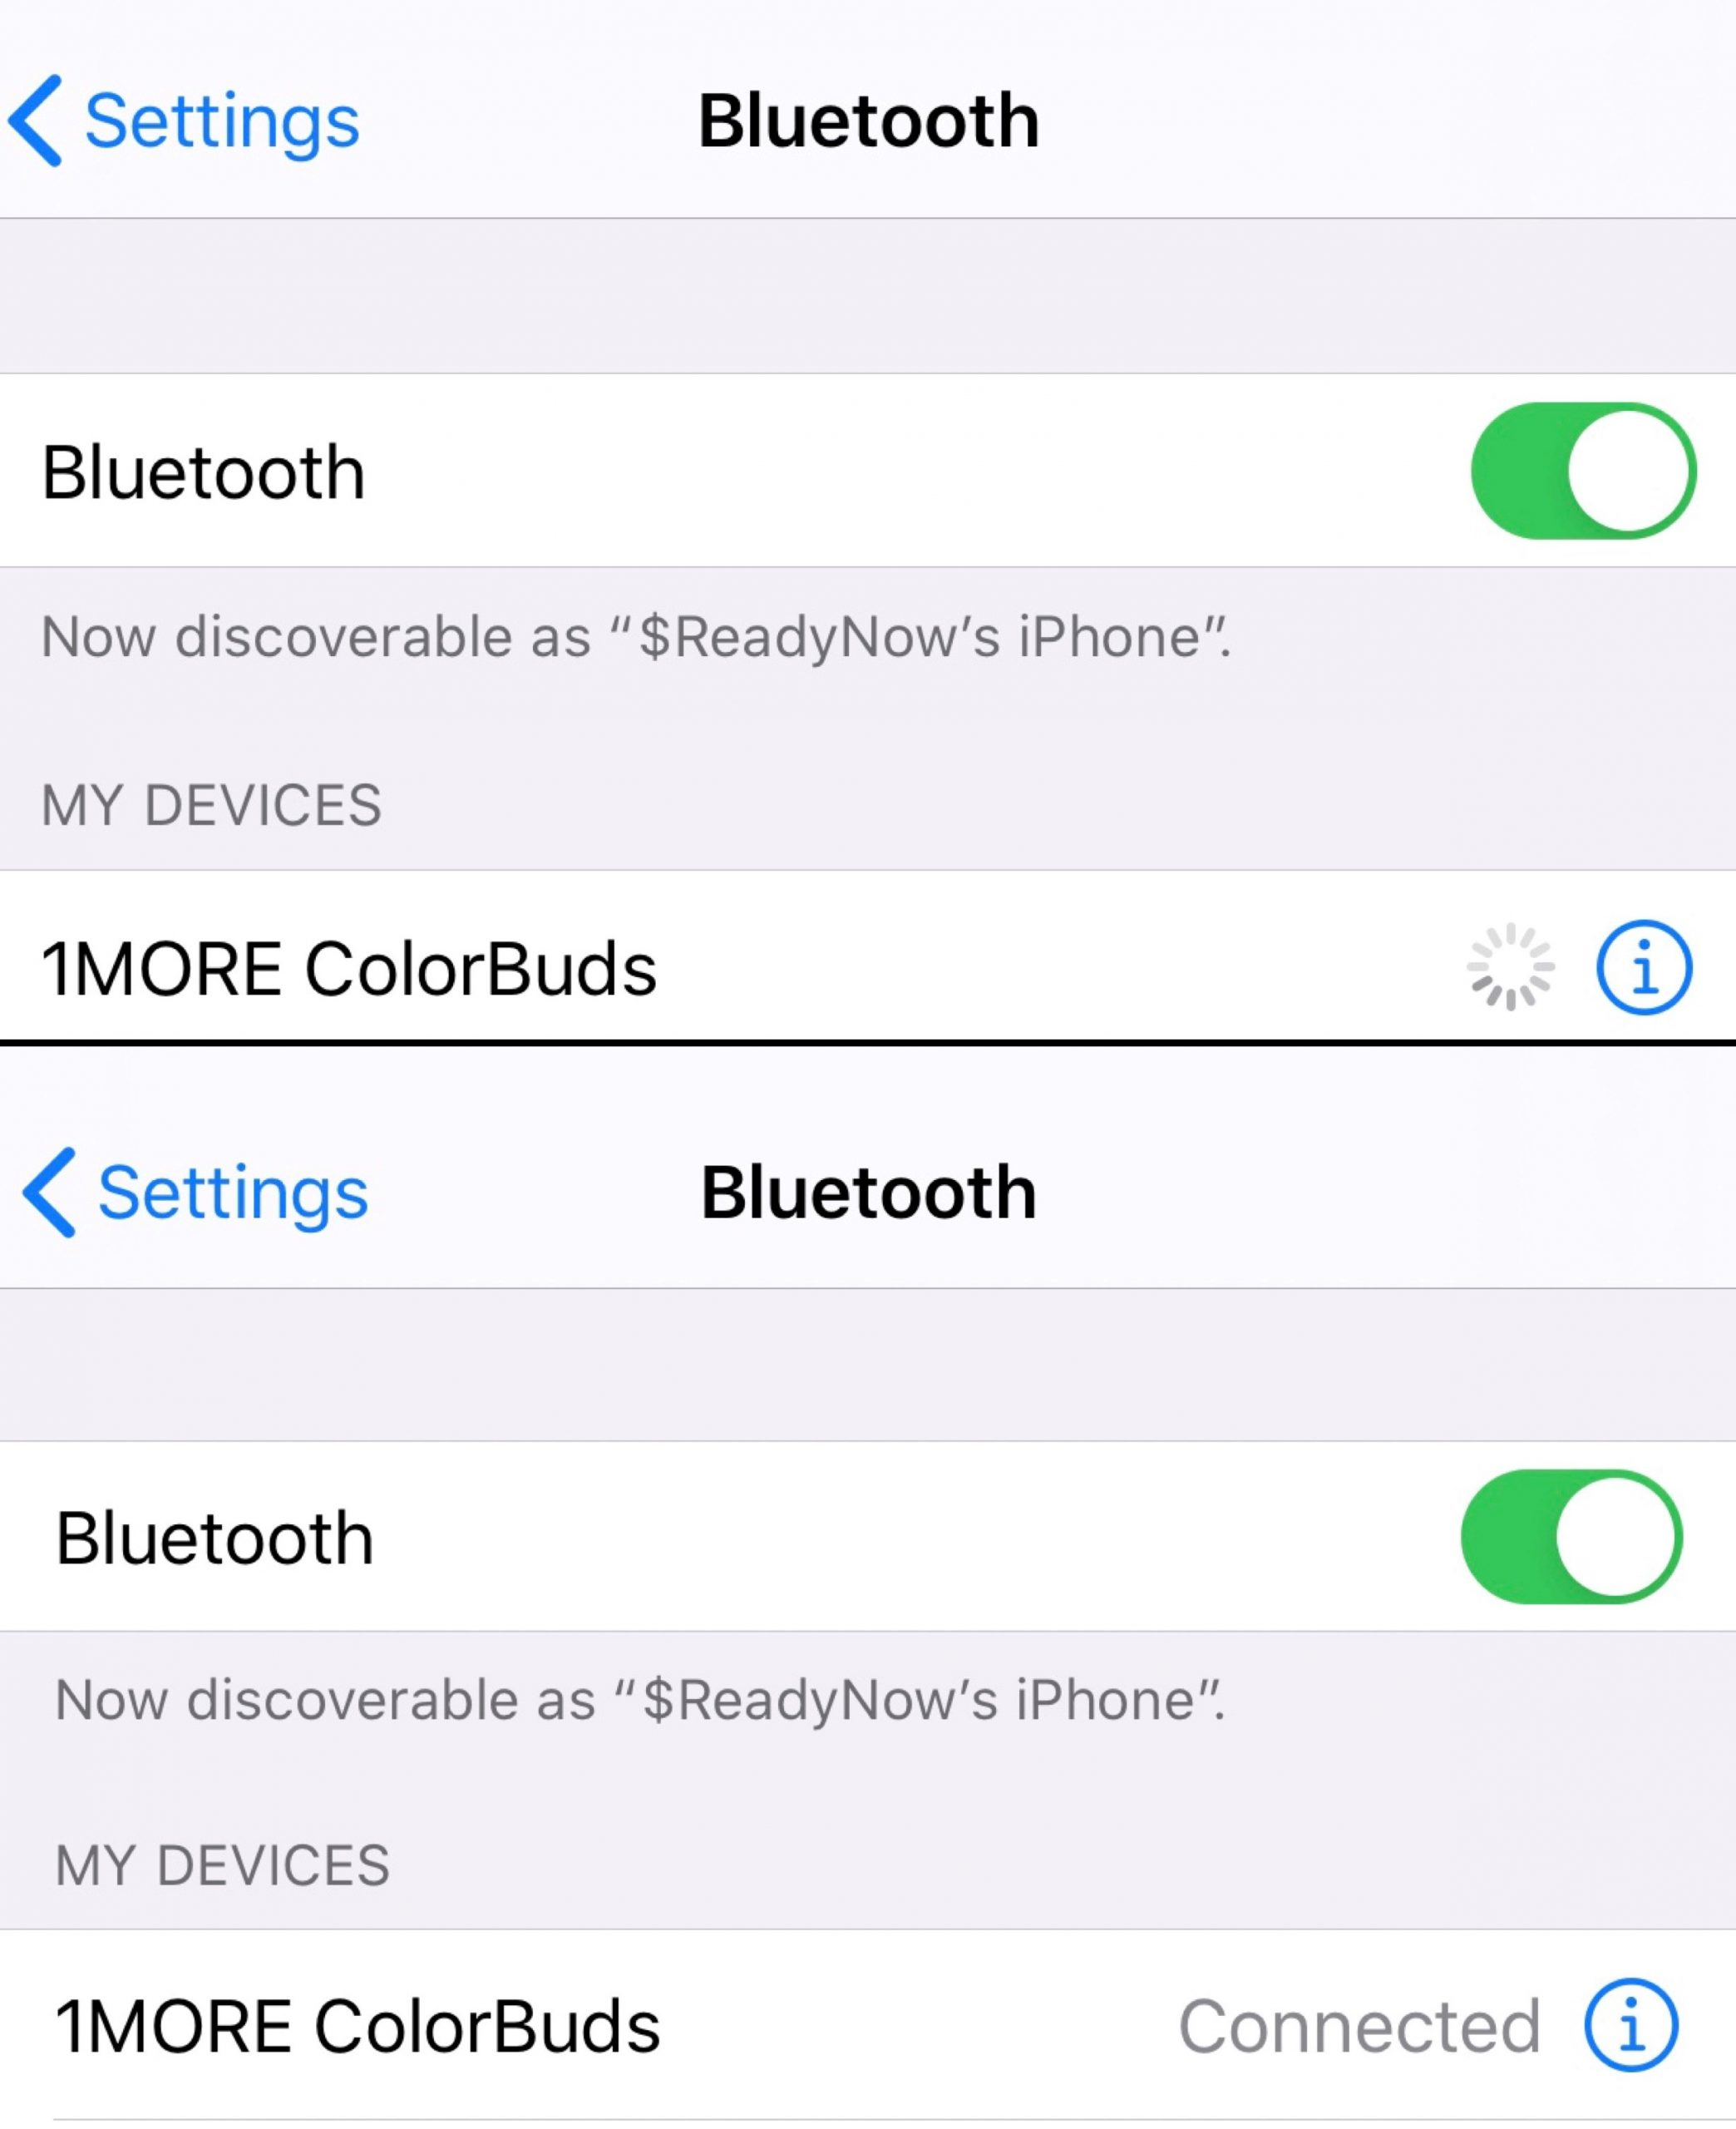 1More-Colorbuds-Phone